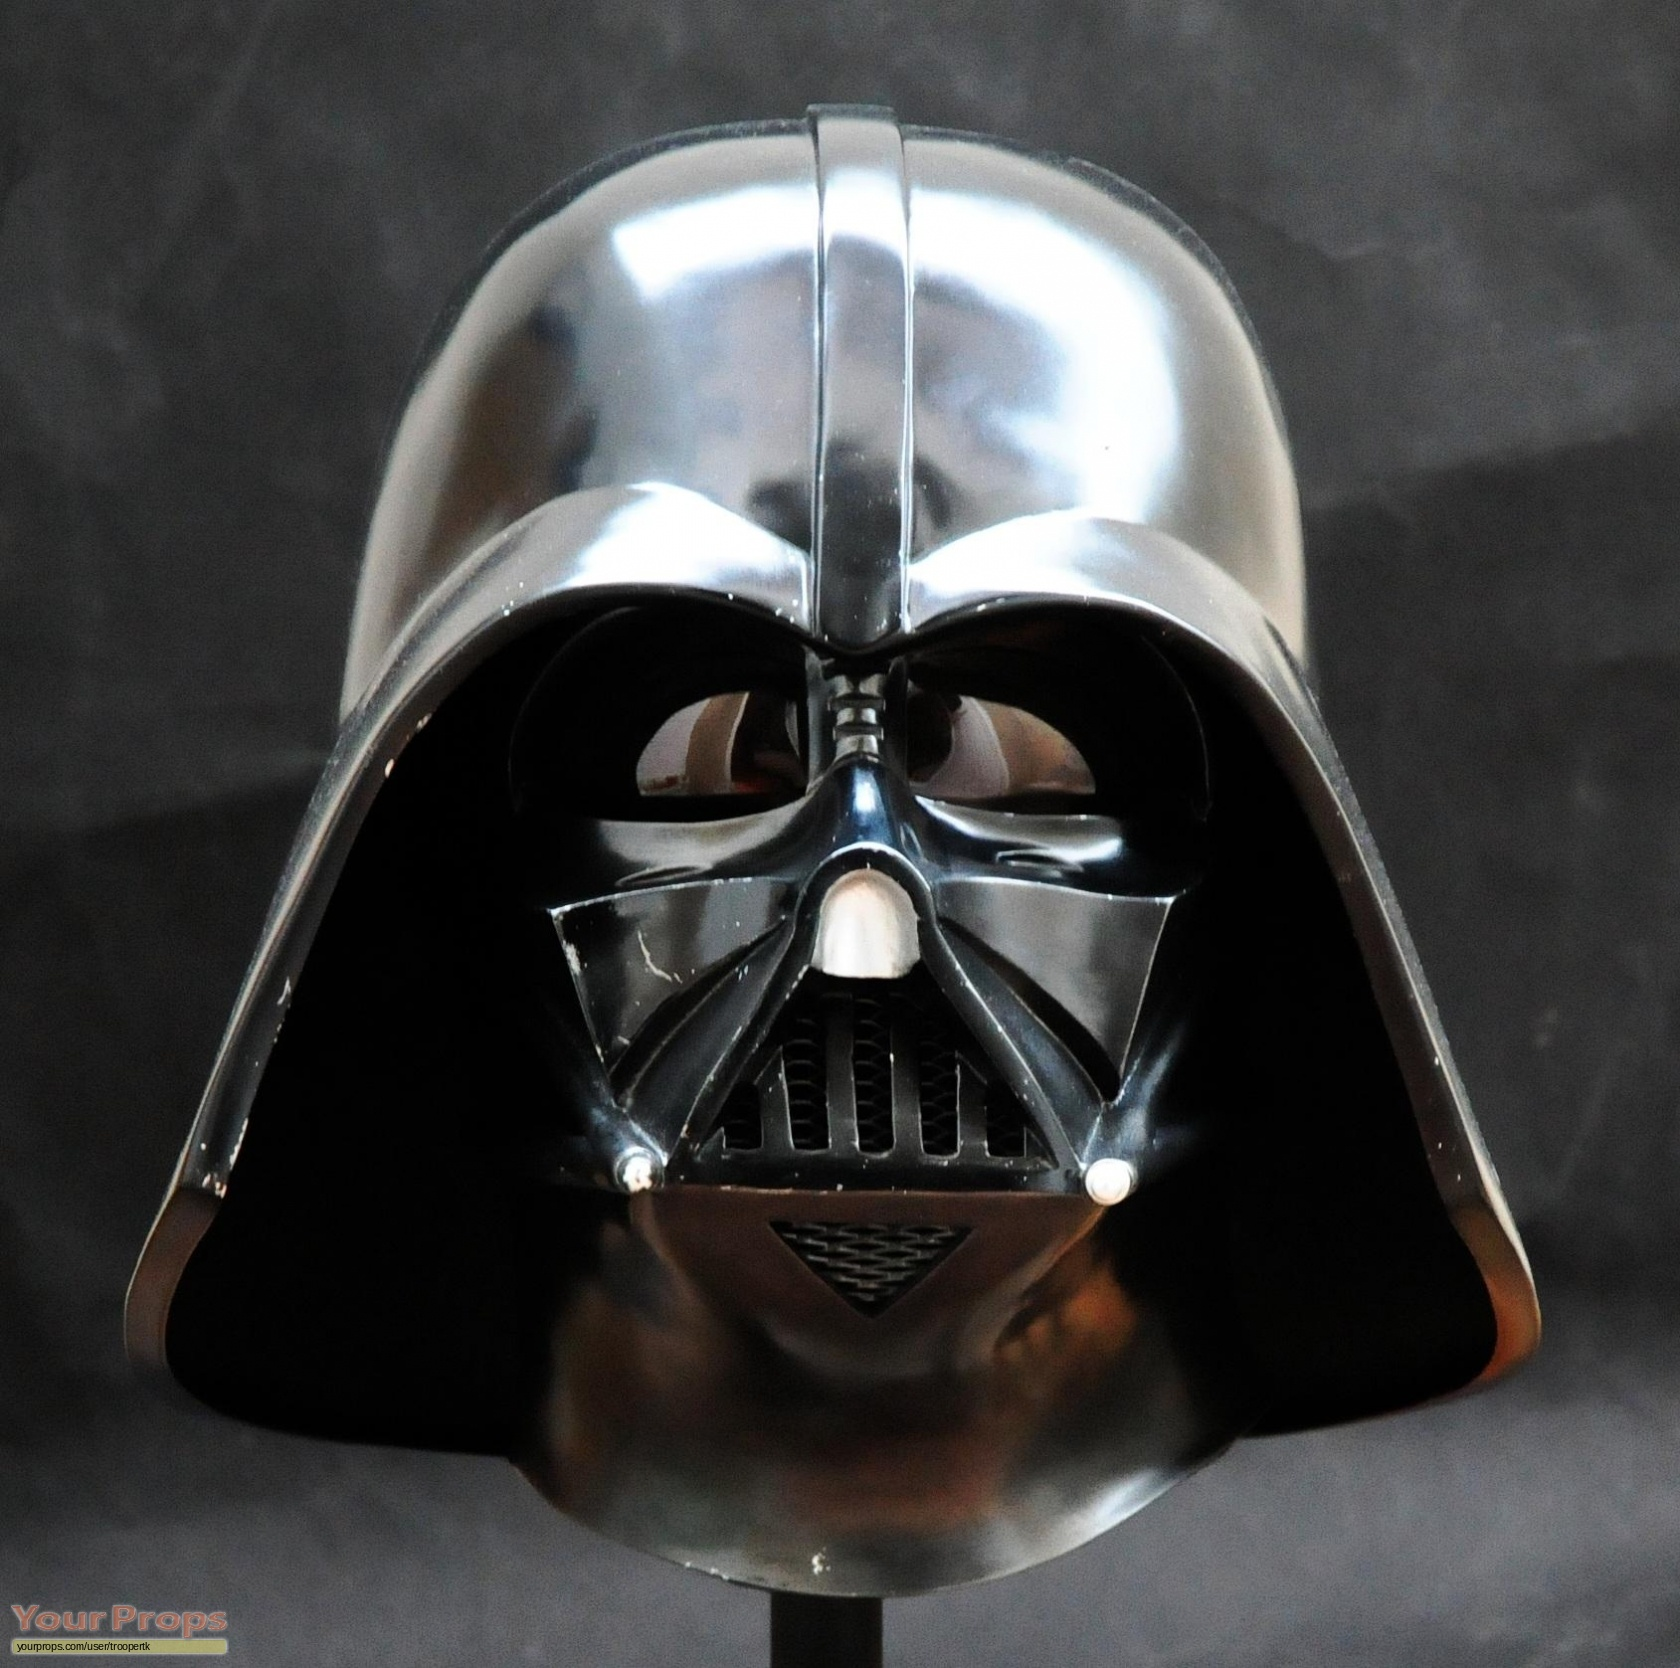 star wars a new hope efx darth vader helmet anh le replica movie prop. Black Bedroom Furniture Sets. Home Design Ideas